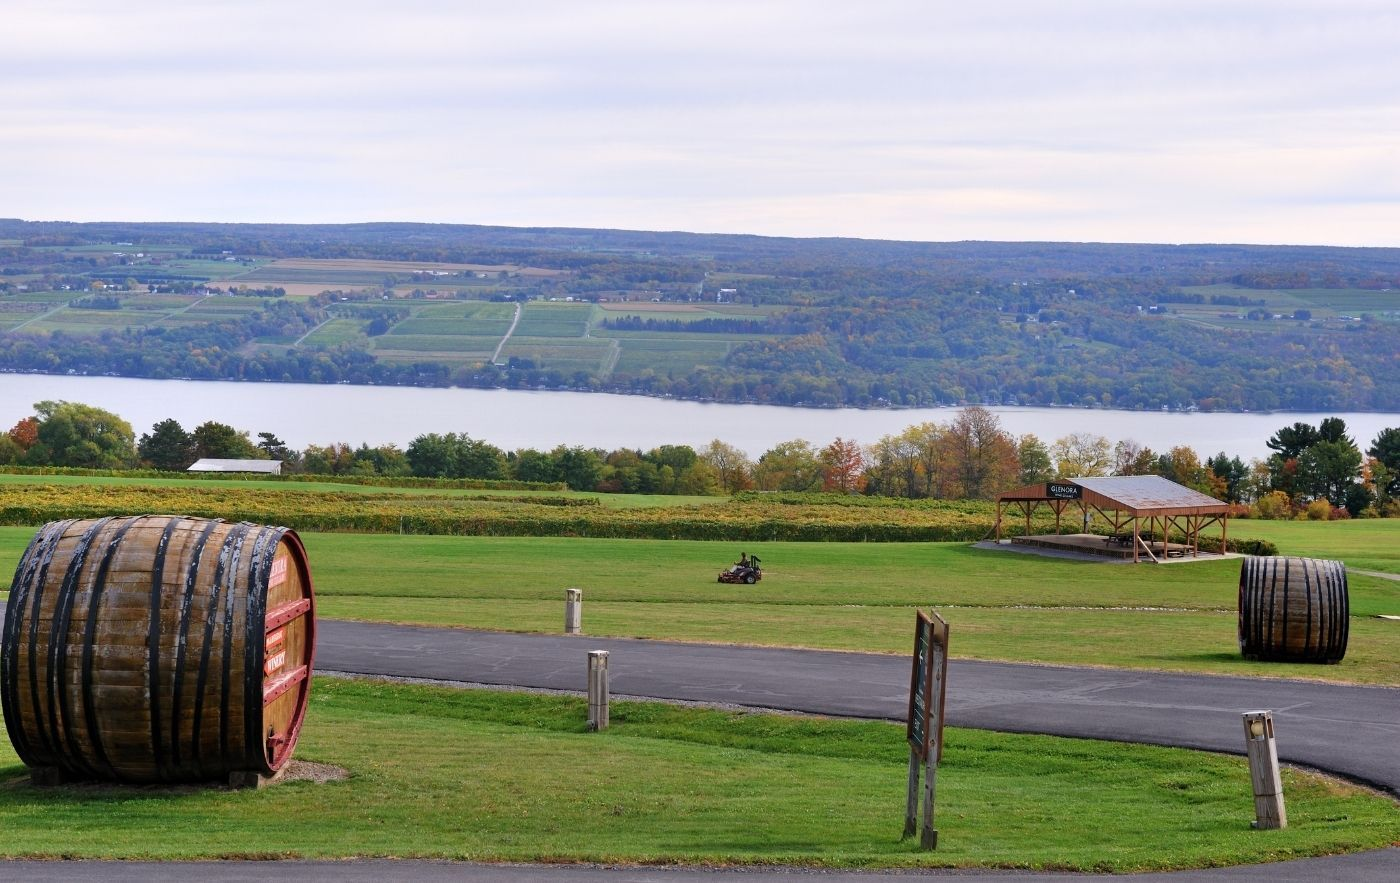 Wine vineyard overlooking a lake in the Finger Lakes region of New York.